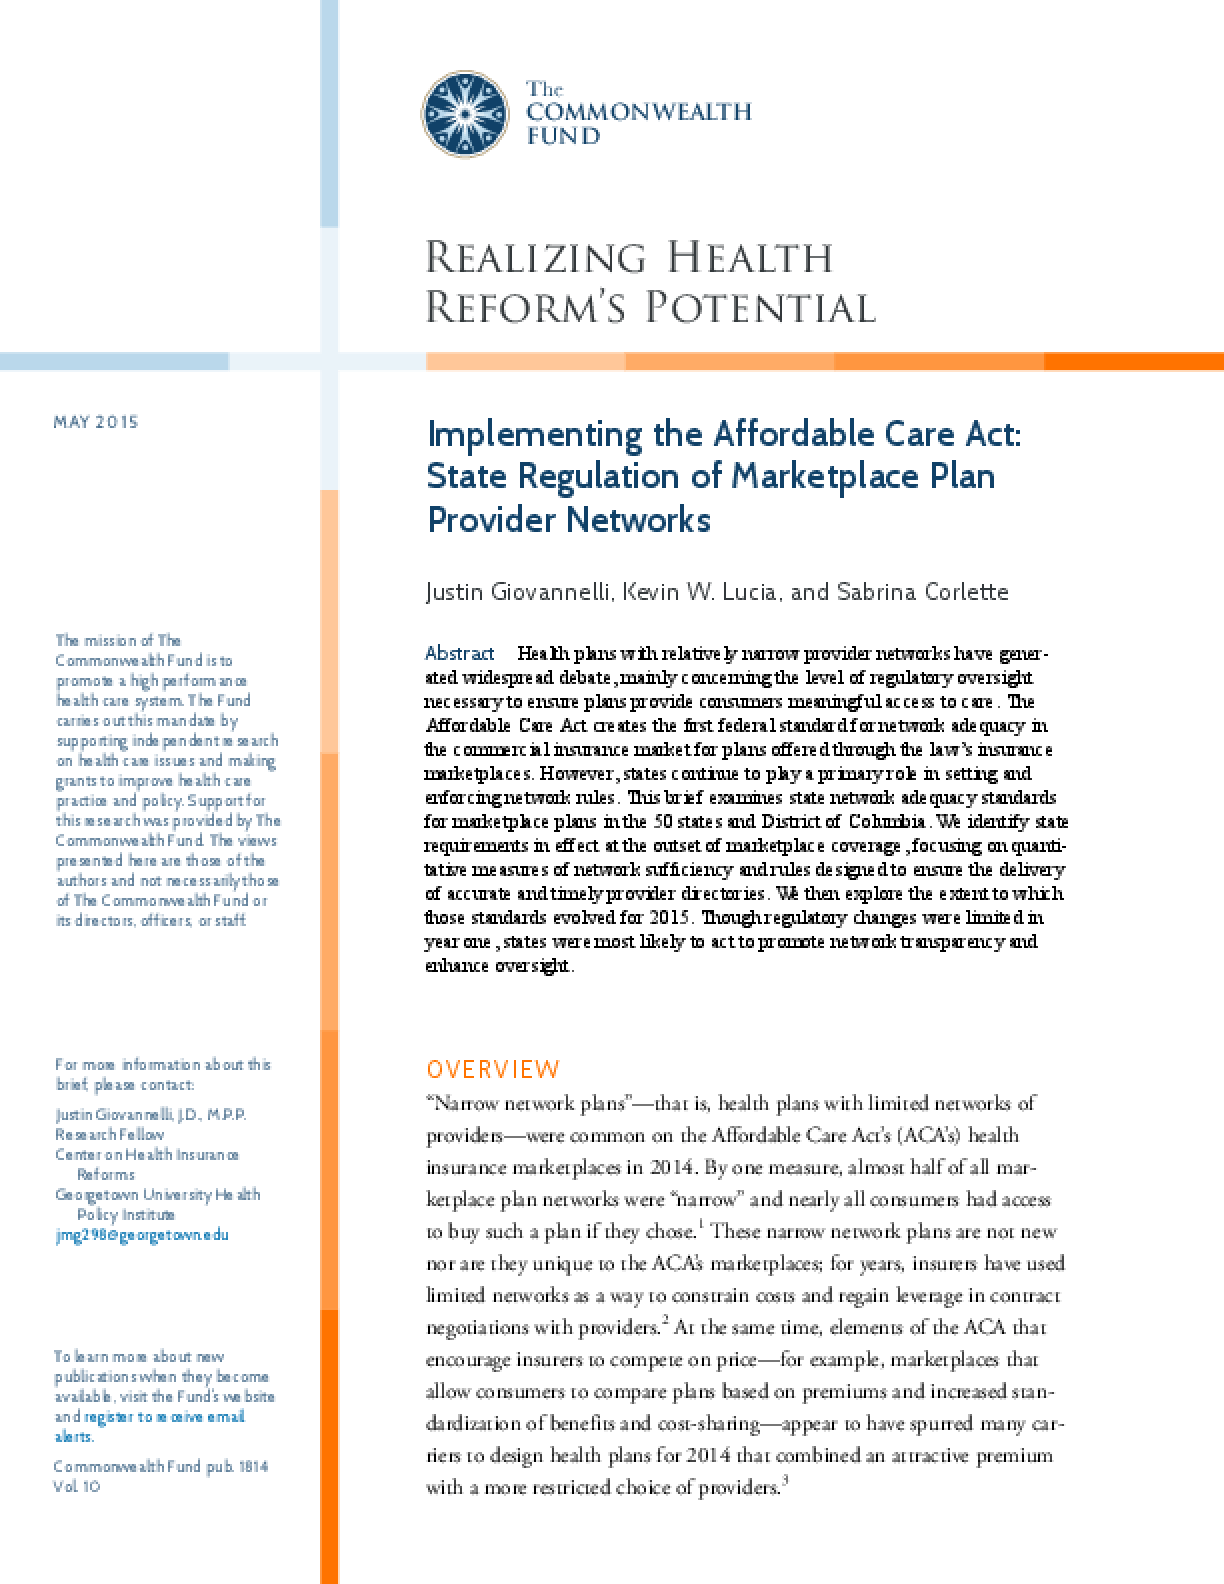 Implementing the Affordable Care Act: State Regulation of Marketplace Plan Provider Networks